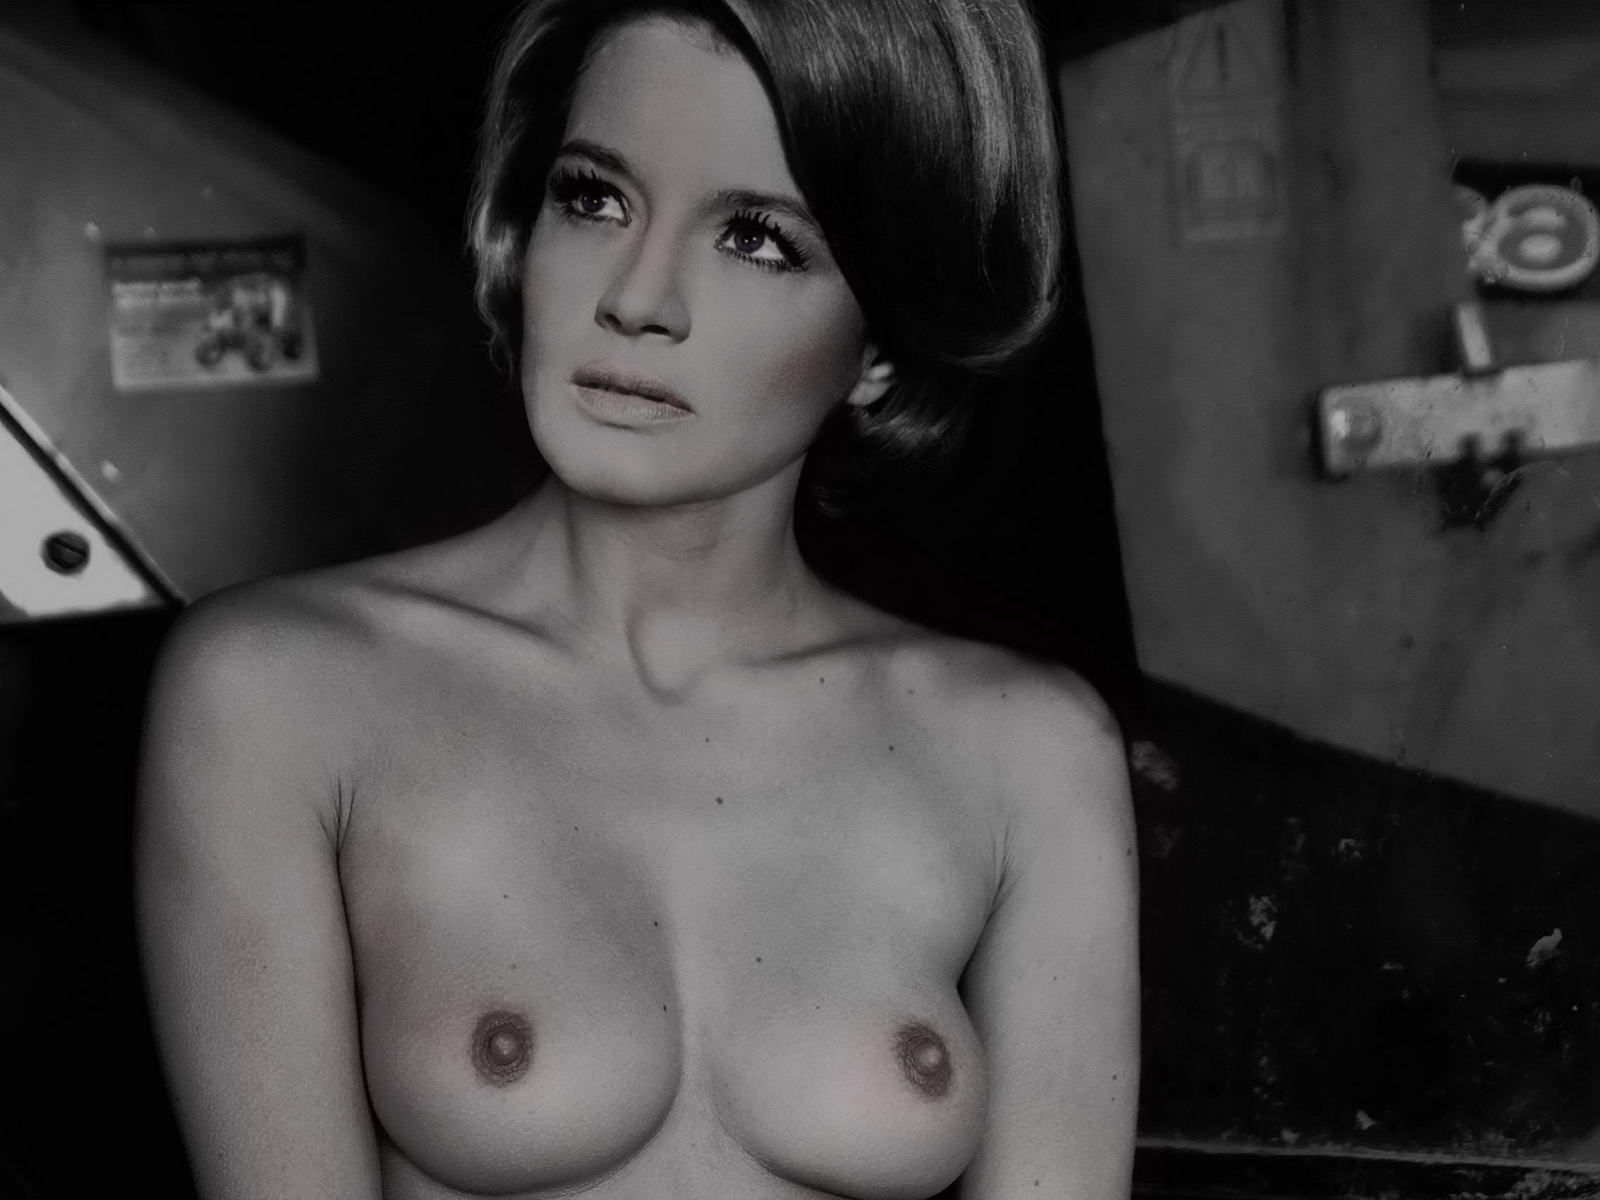 Angie dickinson nude black and white portrait photo